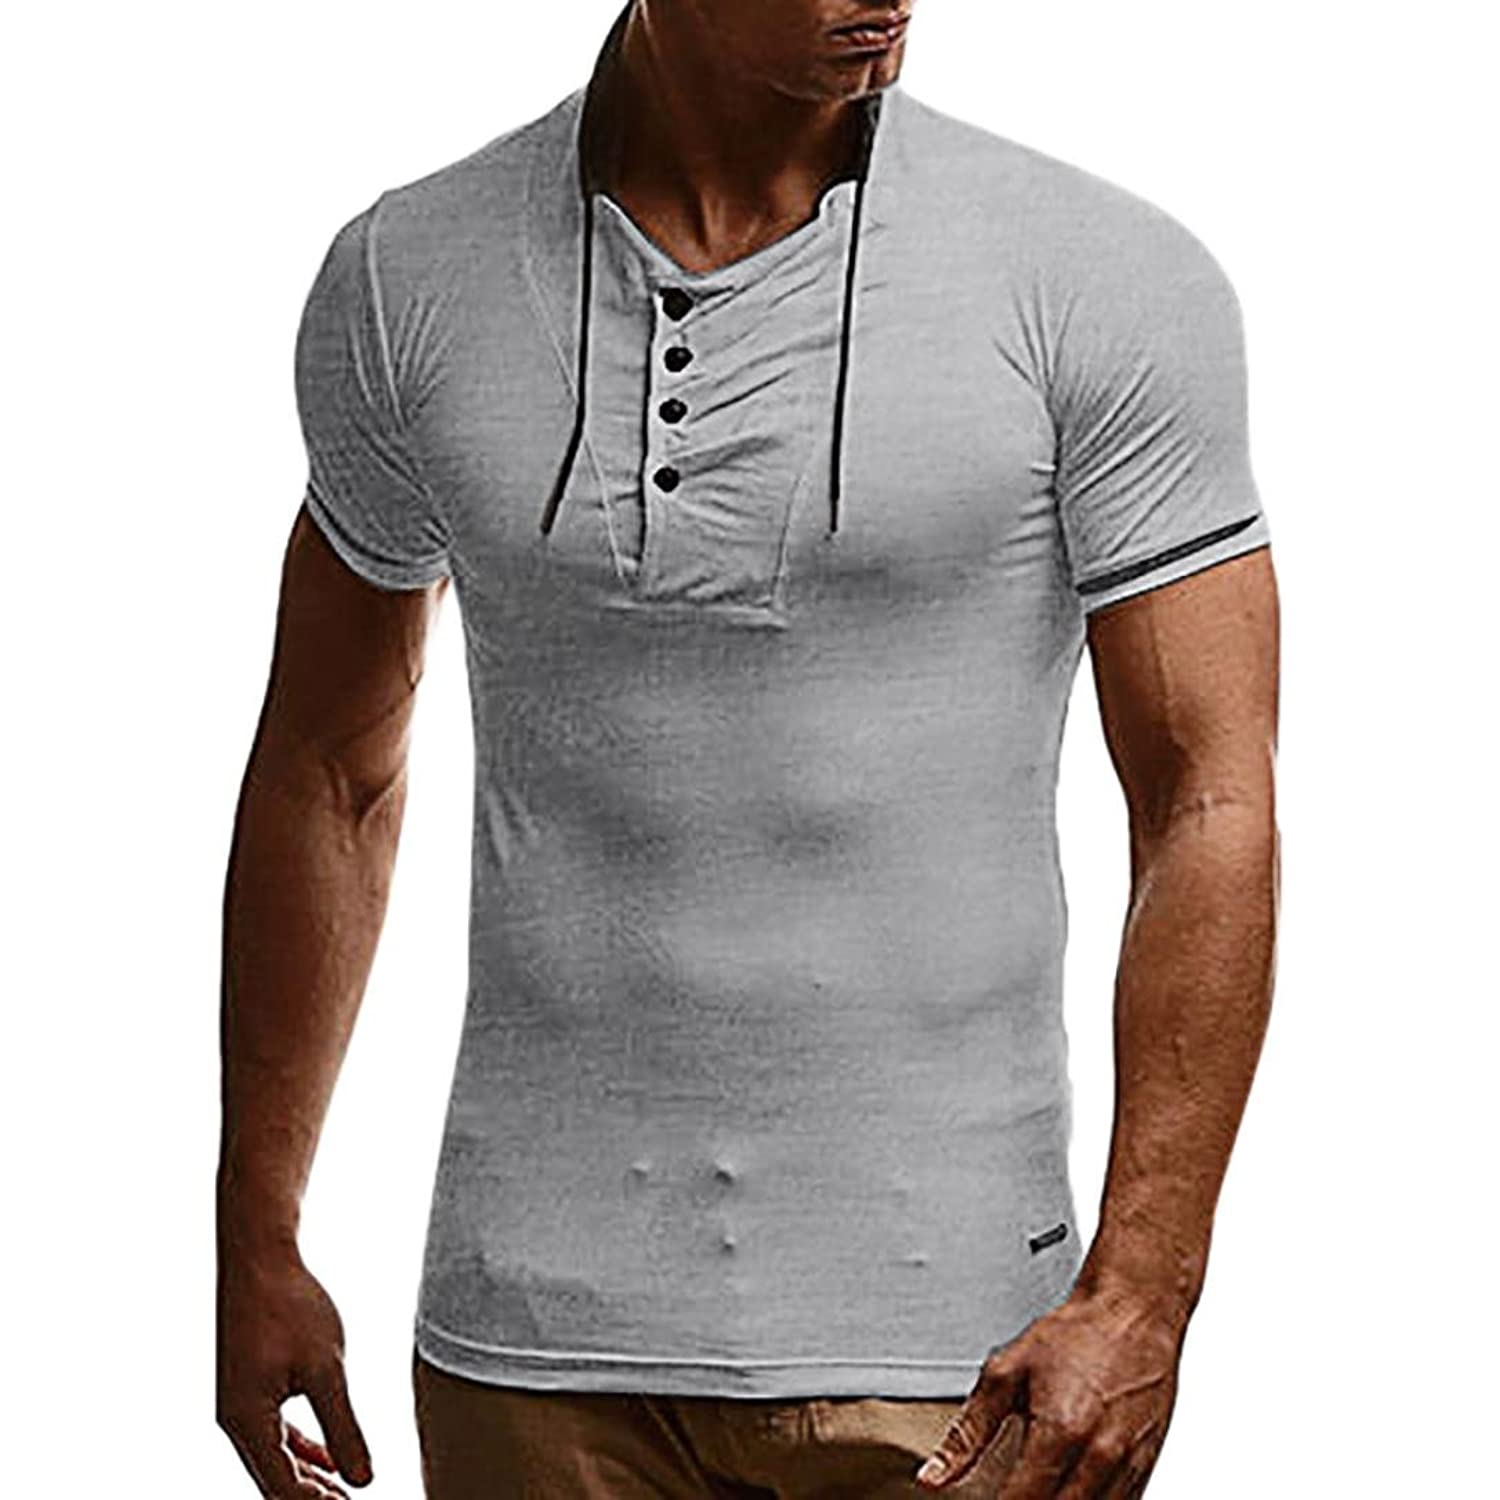 3c1cdd288b Slim Fit, o-Neck, Short Sleeve, button shirt simple and plain sports casual  shirt for Sprots ,Daily,Casual ❤ Perfect Match with your favorite Shorts,  ...